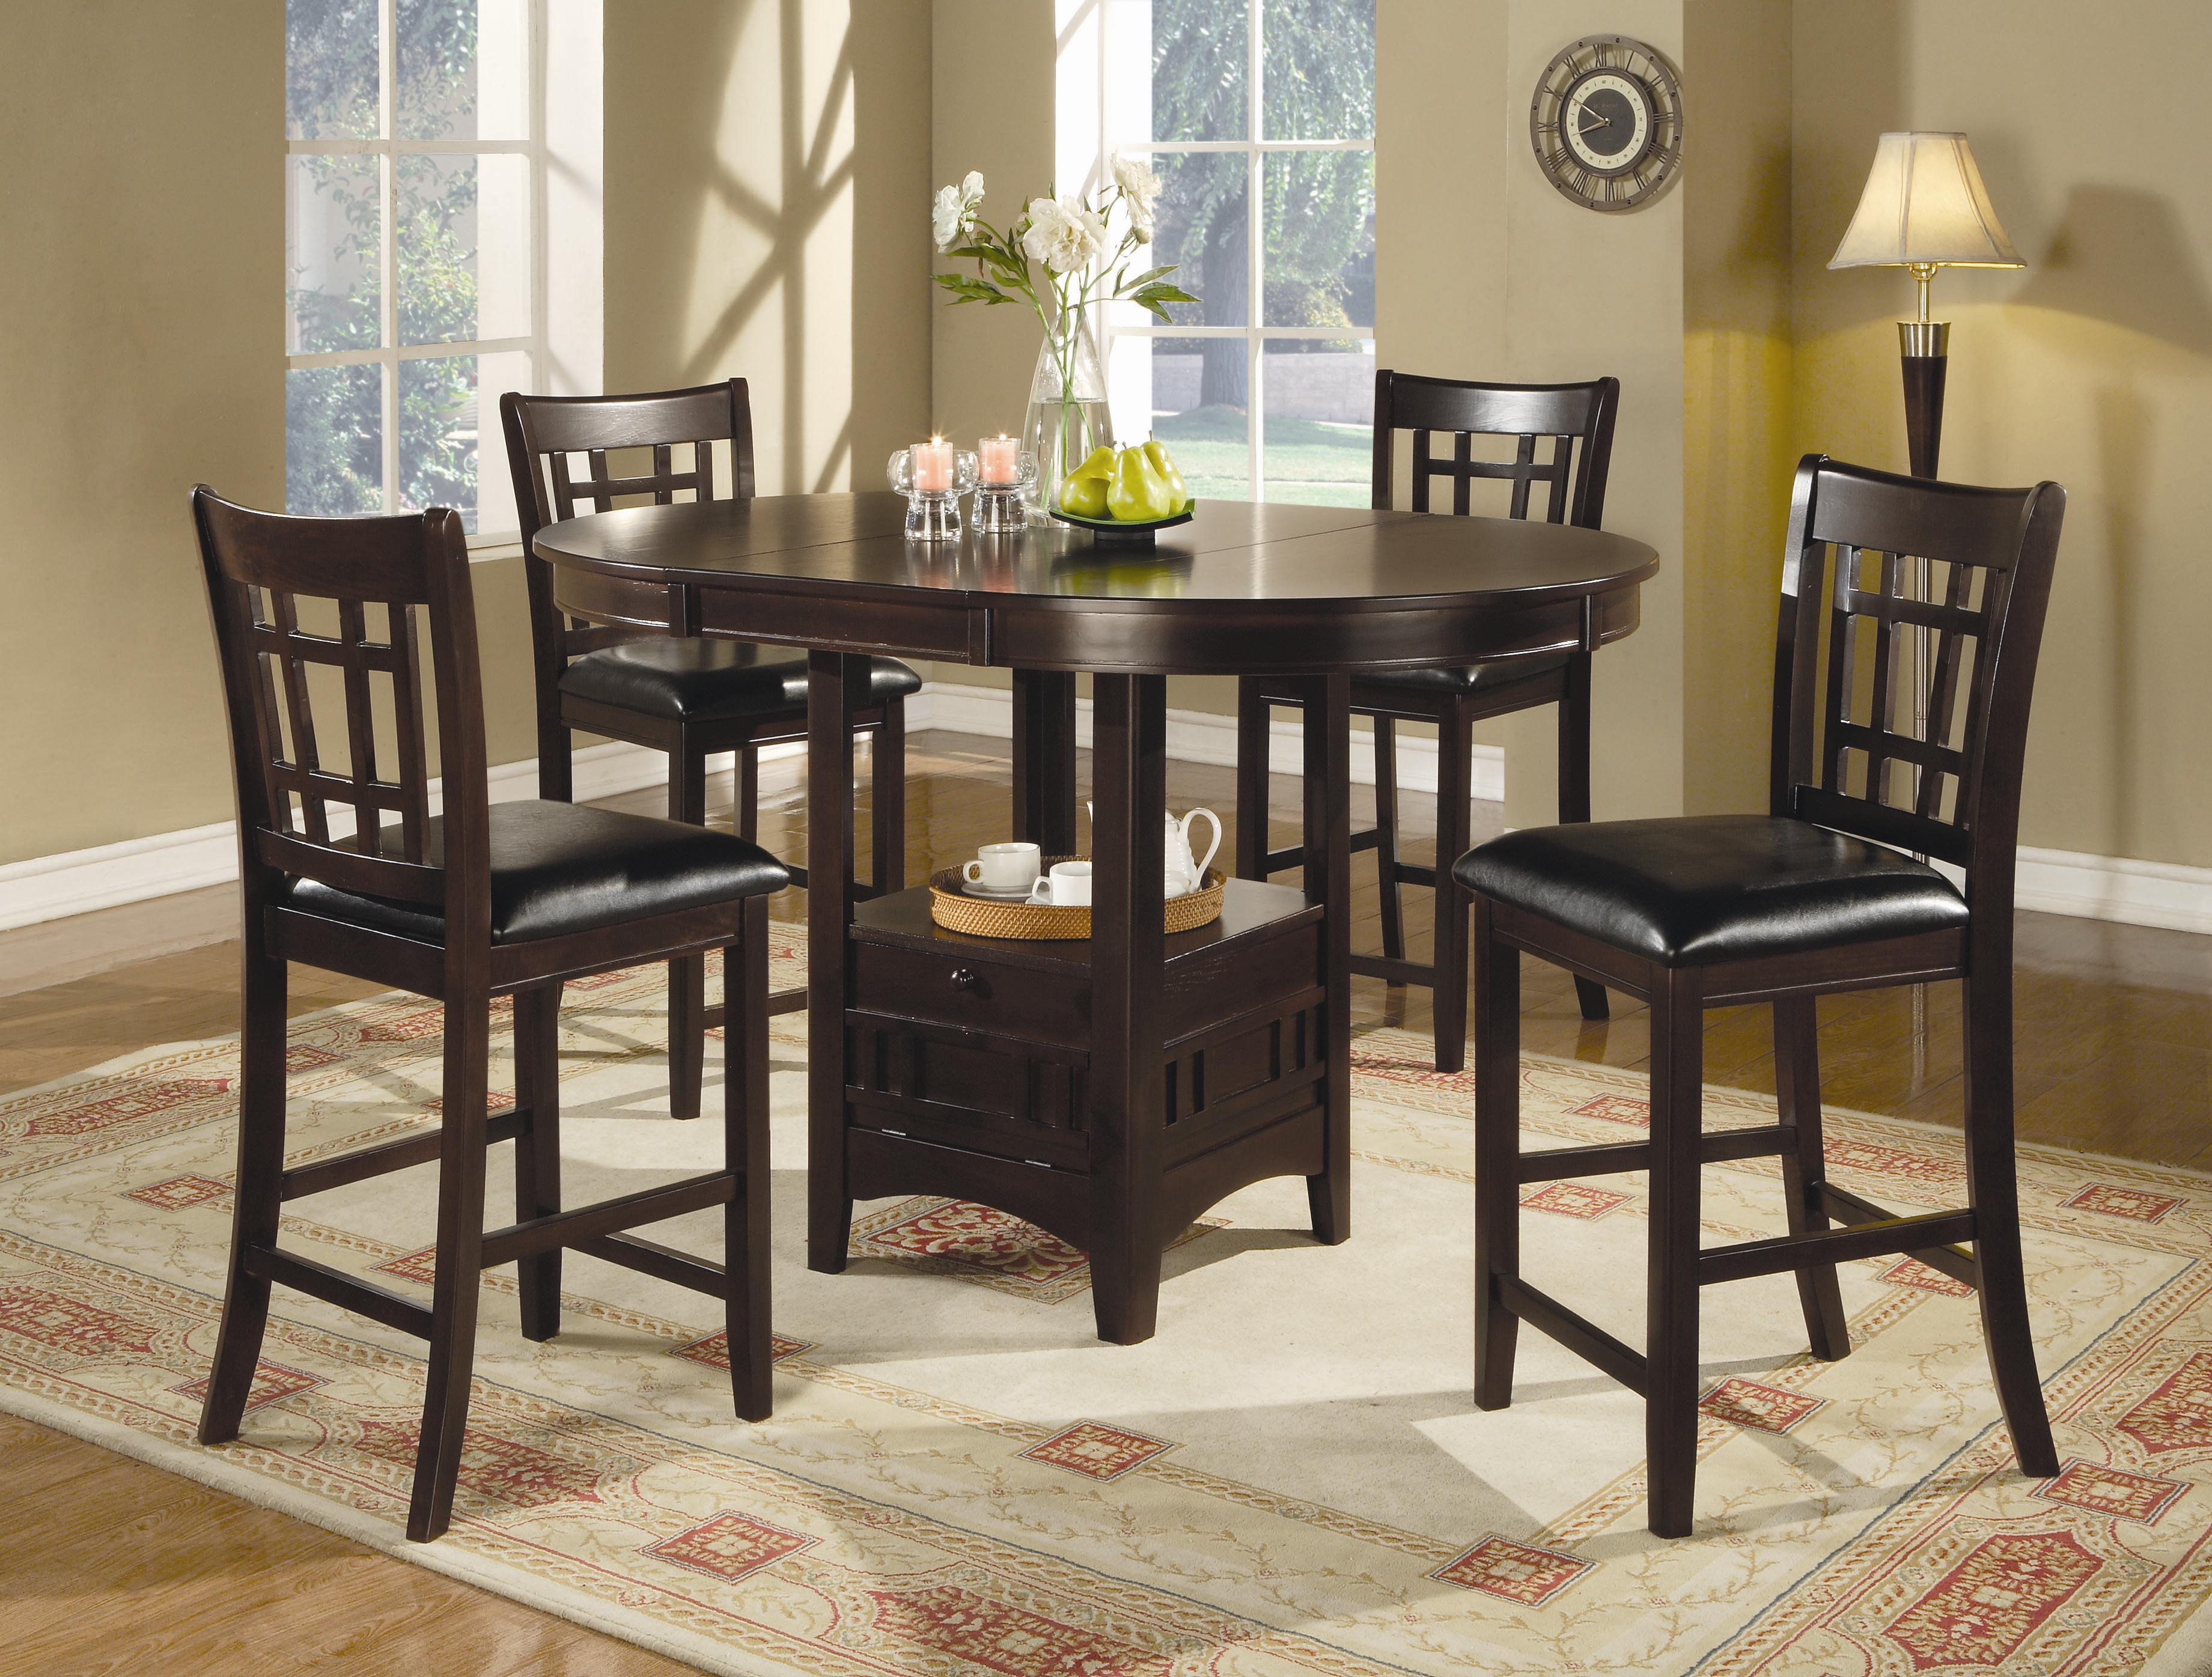 5 Piece Counter Table and Chair Set